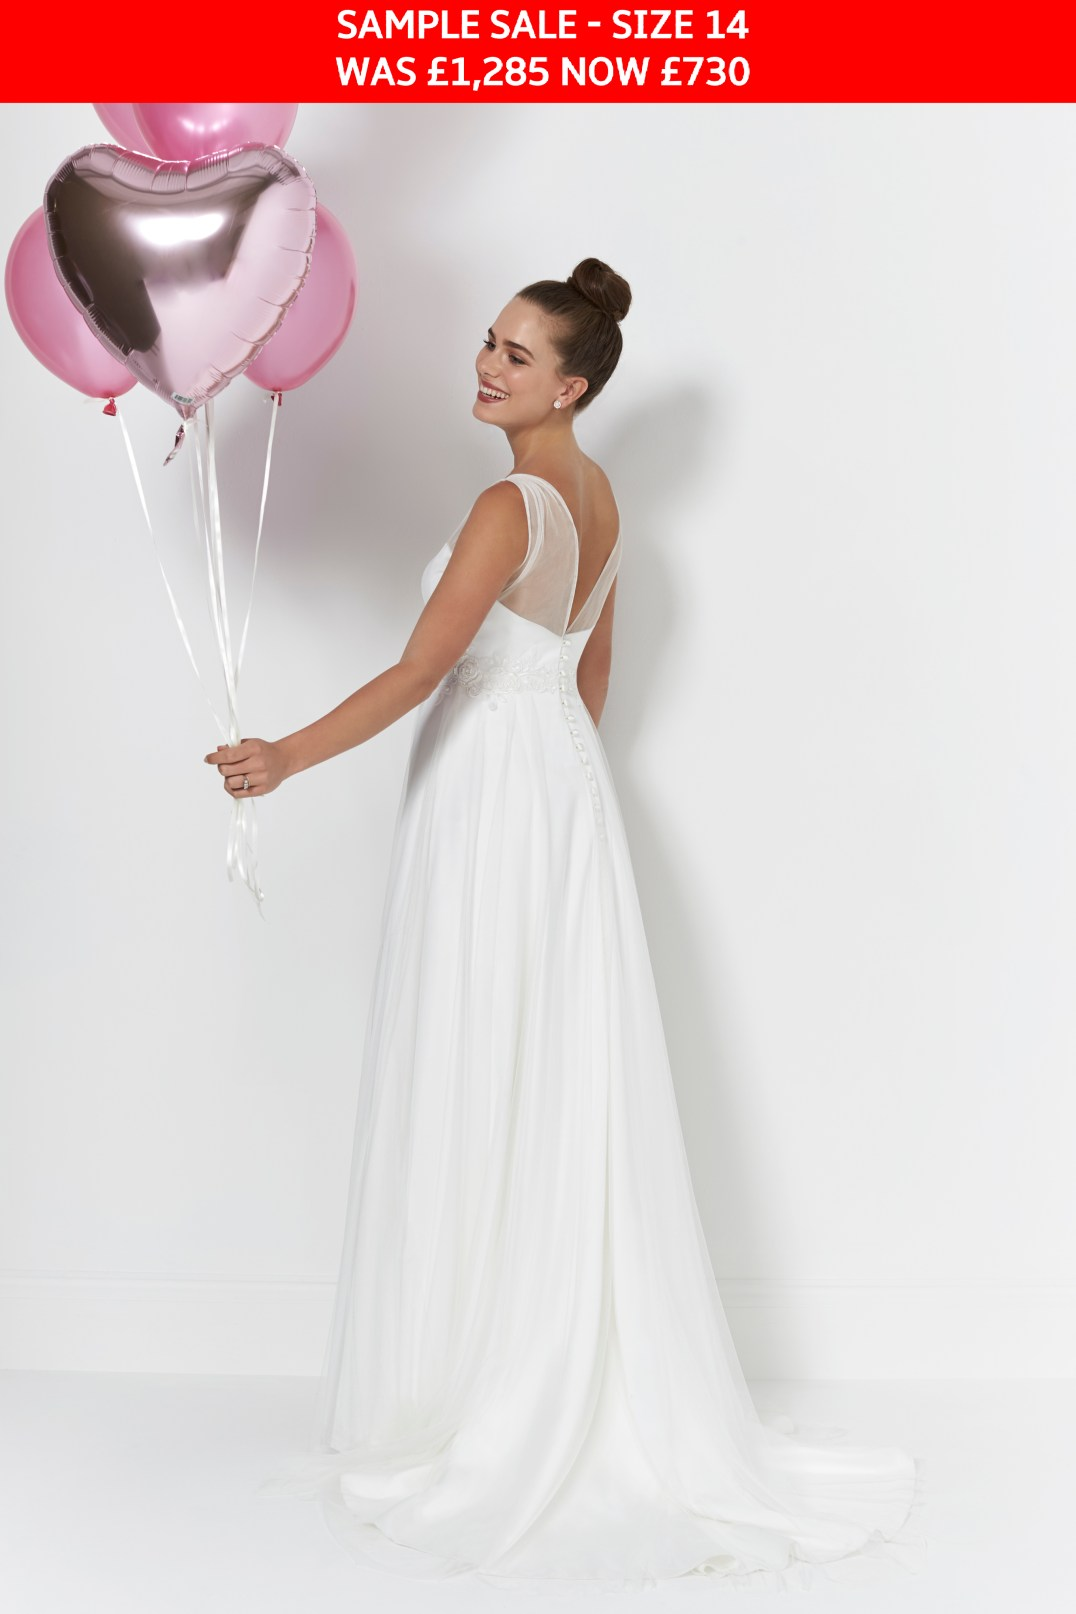 So Sassi Libby bridal gown sample sale